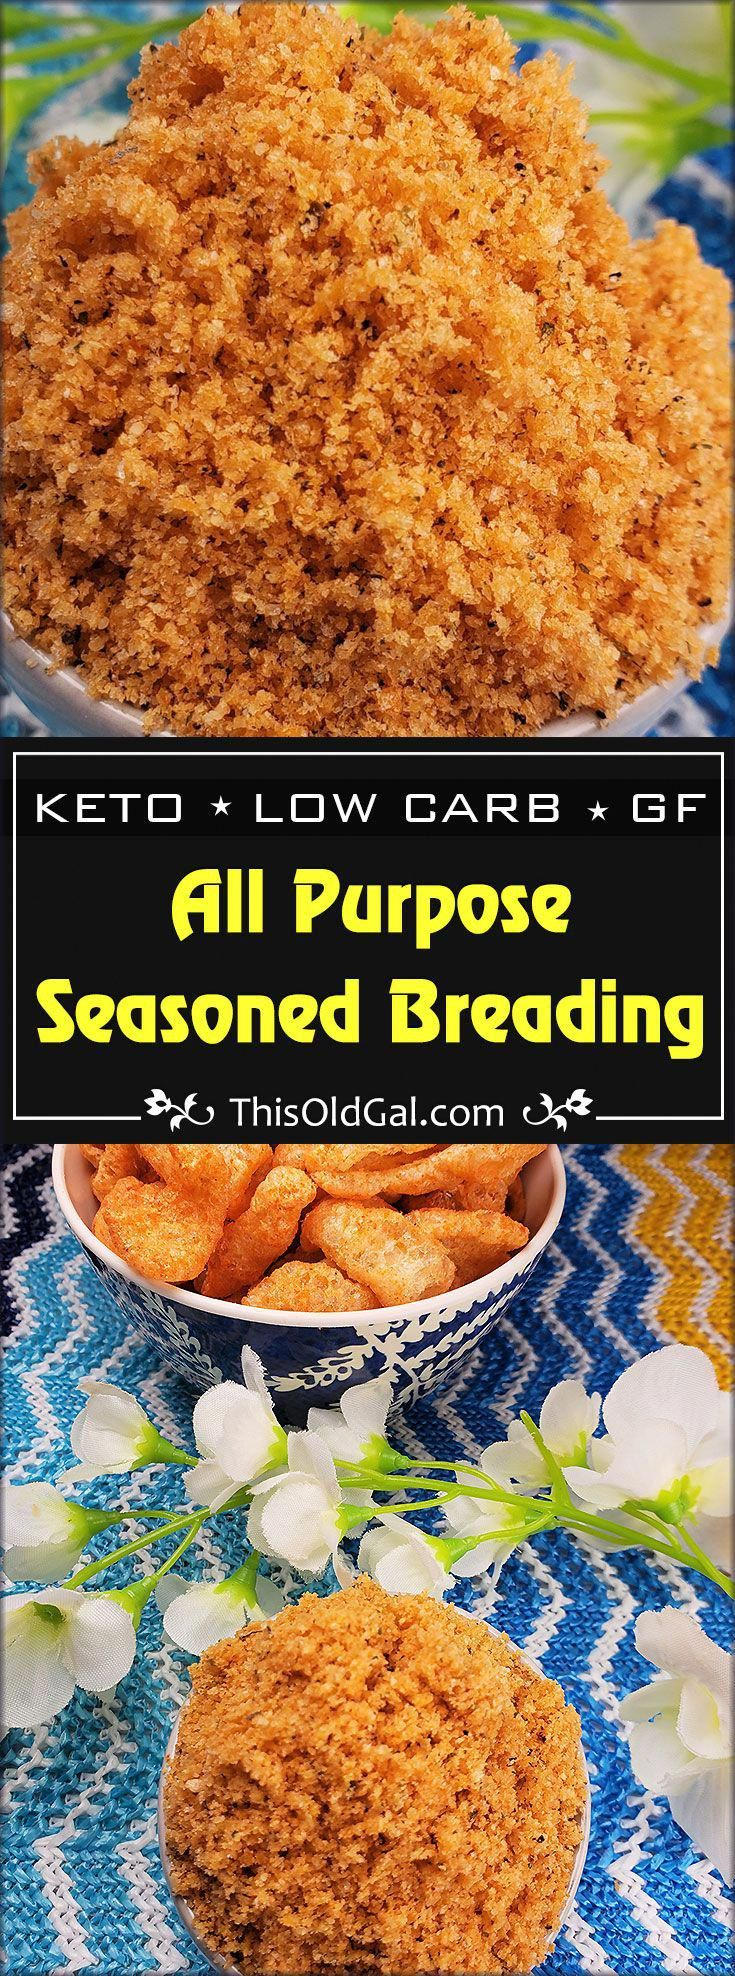 Keto All Purpose Low Carb Seasoned Breading is a flavorful and crunchy coating for pan frying or air...